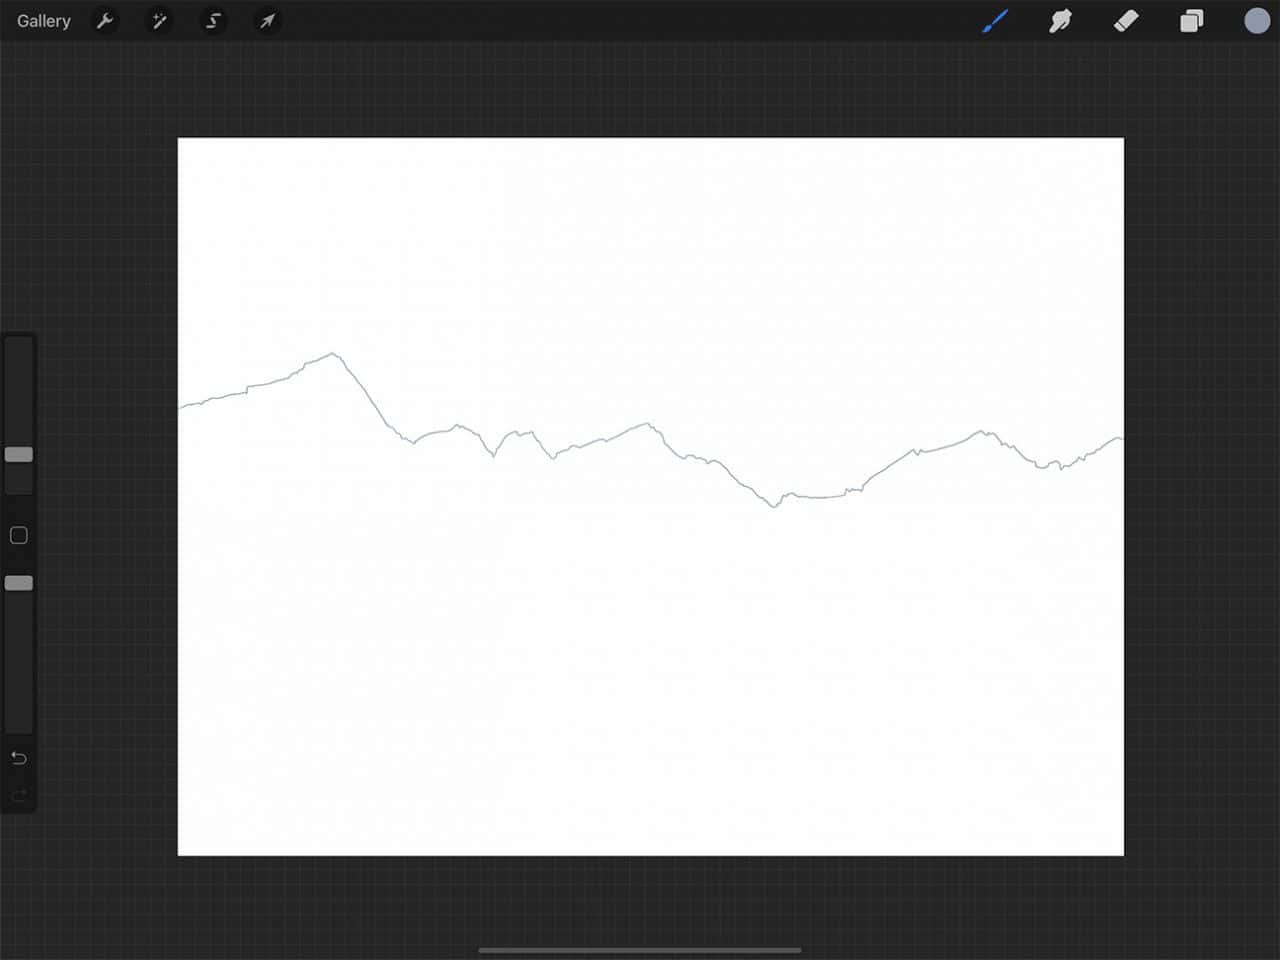 How to Draw Mountains: Procreate offers many brush options for starting your drawing